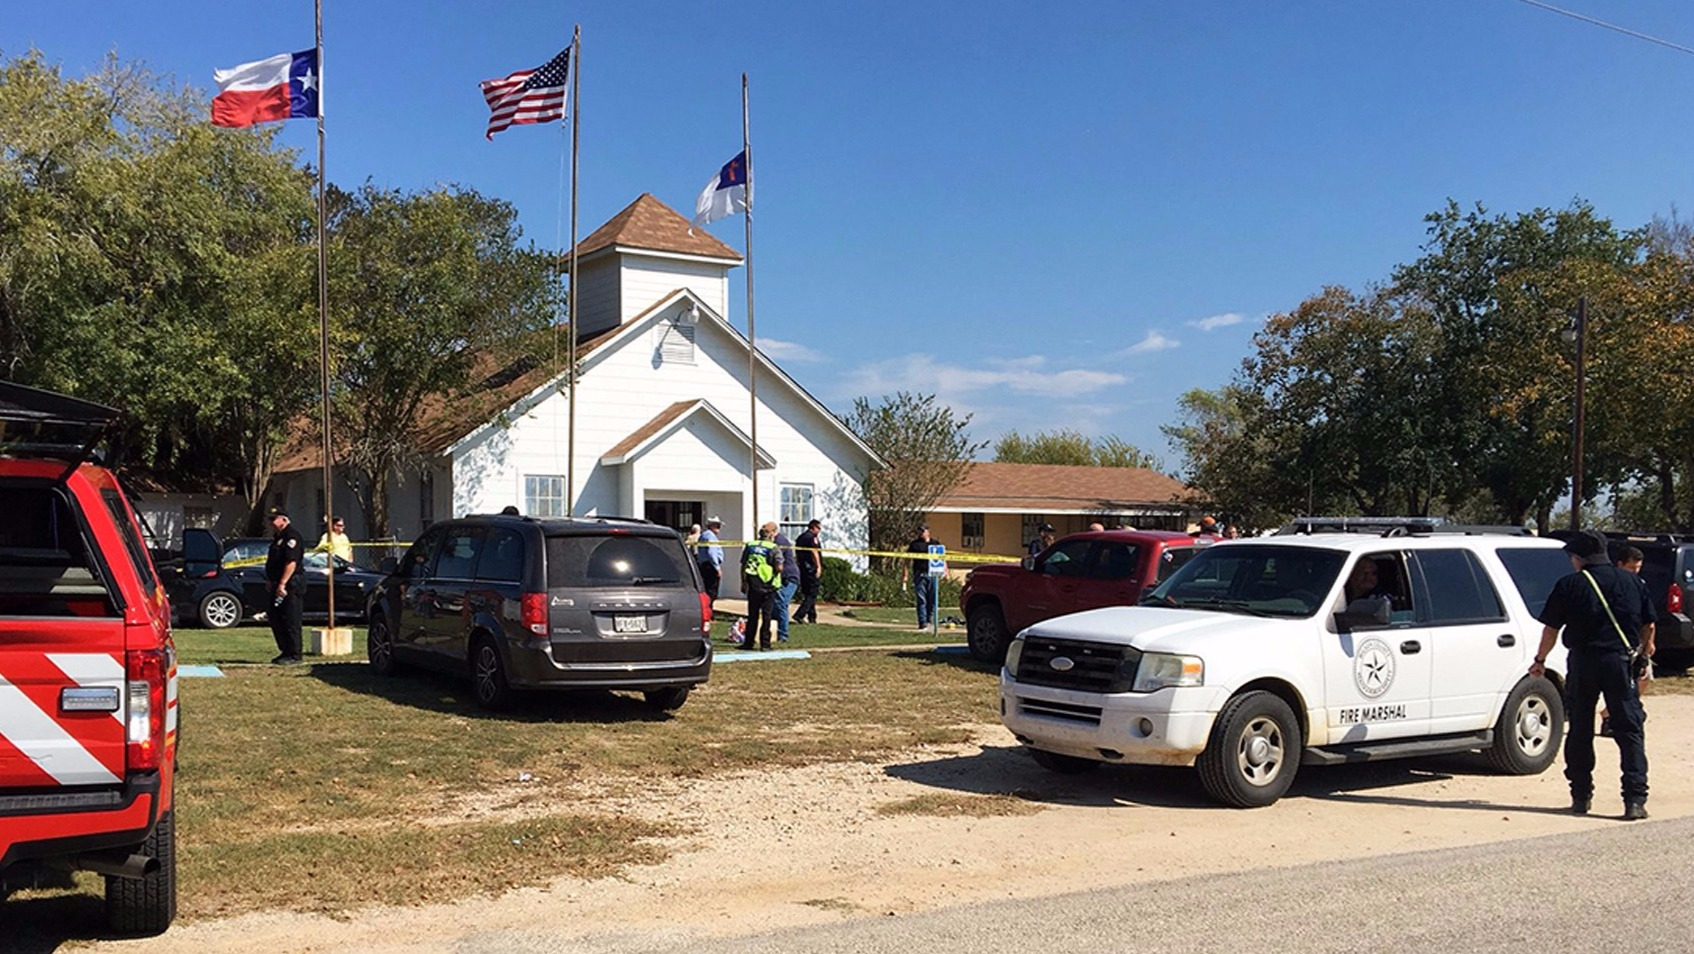 Multiple people shot at baptist church in Texas, suspect reported dead